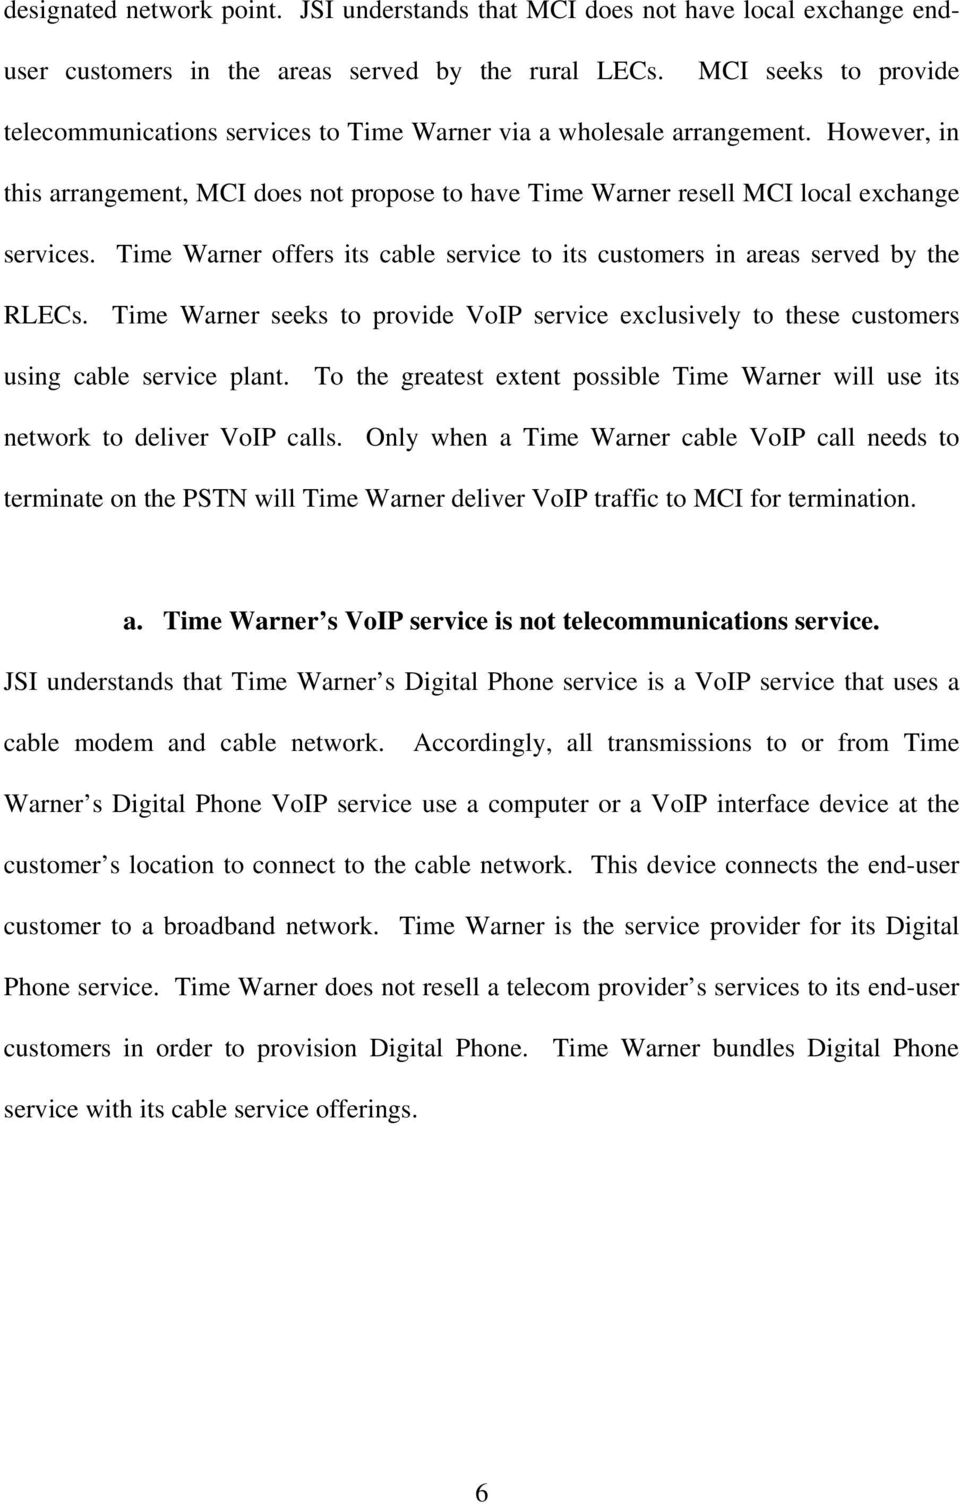 Time Warner offers its cable service to its customers in areas served by the RLECs. Time Warner seeks to provide VoIP service exclusively to these customers using cable service plant.